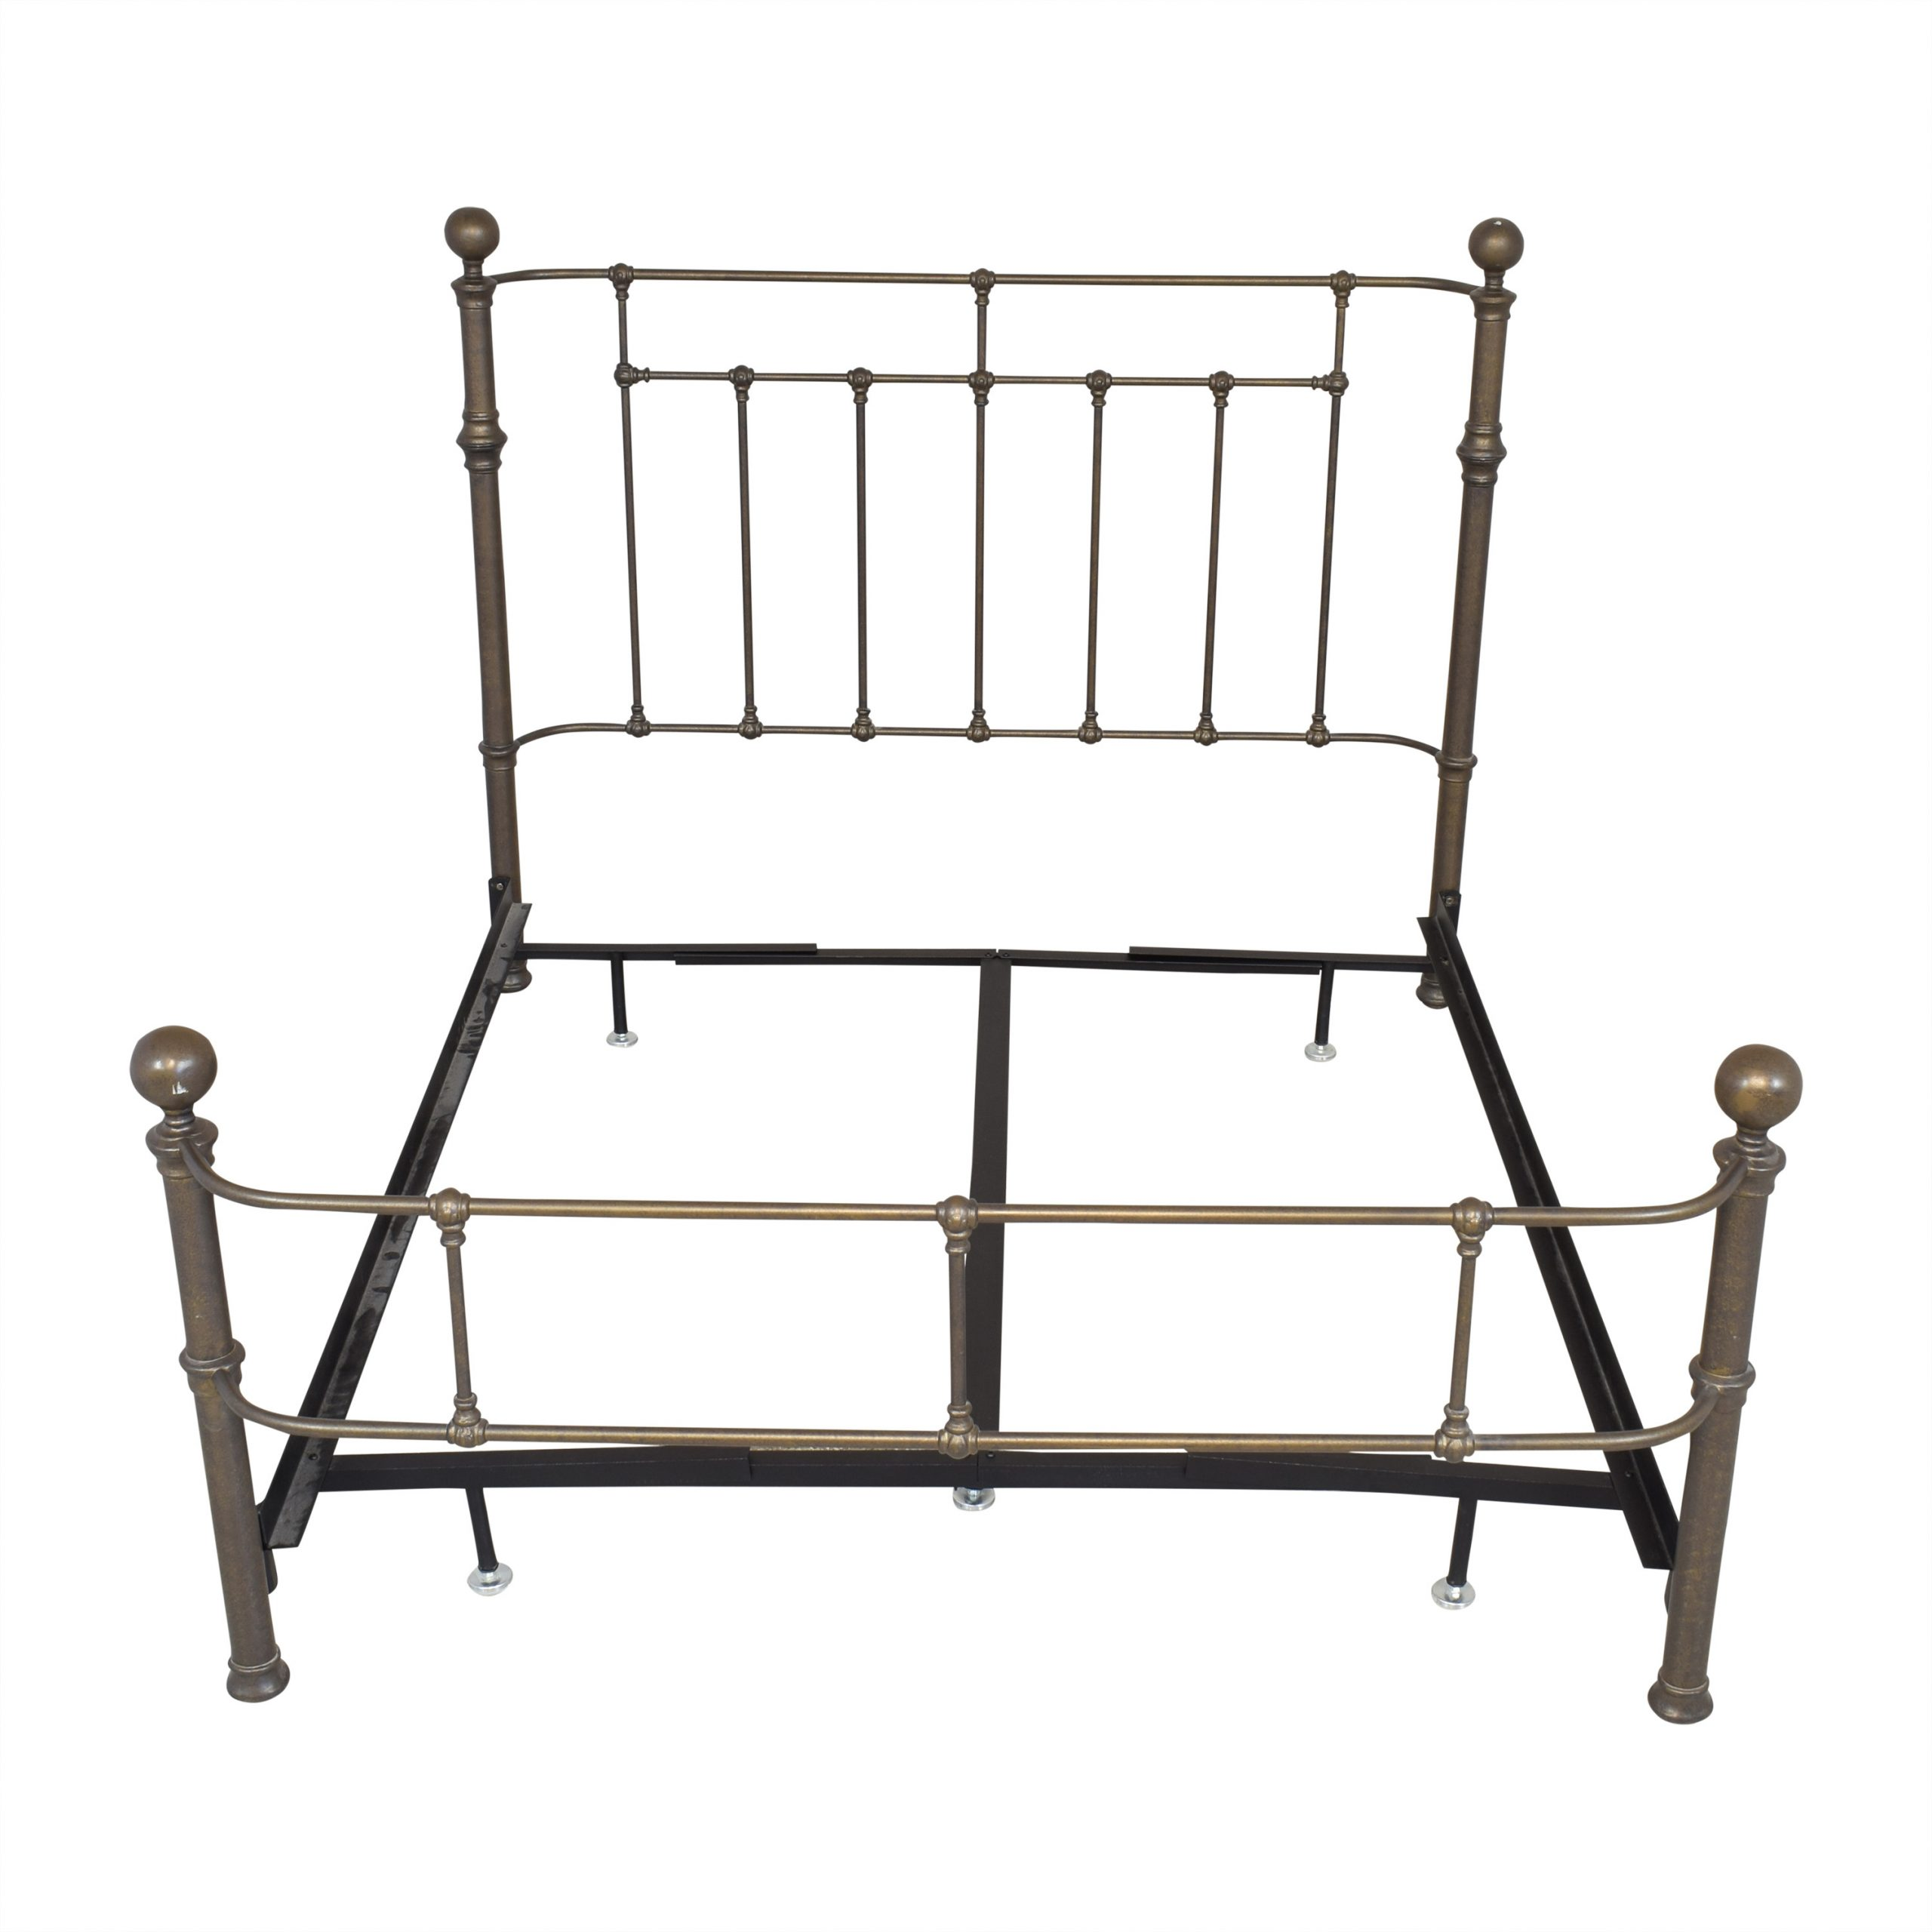 [%51% Off – Charlton Home Charlton Home Denis Queen Bed / Beds Intended For Famous Metal Wall Décor By Charlton Home metal Wall Décor By Charlton Home With Best And Newest 51% Off – Charlton Home Charlton Home Denis Queen Bed / Beds widely Used Metal Wall Décor By Charlton Home Within 51% Off – Charlton Home Charlton Home Denis Queen Bed / Beds recent 51% Off – Charlton Home Charlton Home Denis Queen Bed / Beds With Regard To Metal Wall Décor By Charlton Home%] (View 17 of 20)